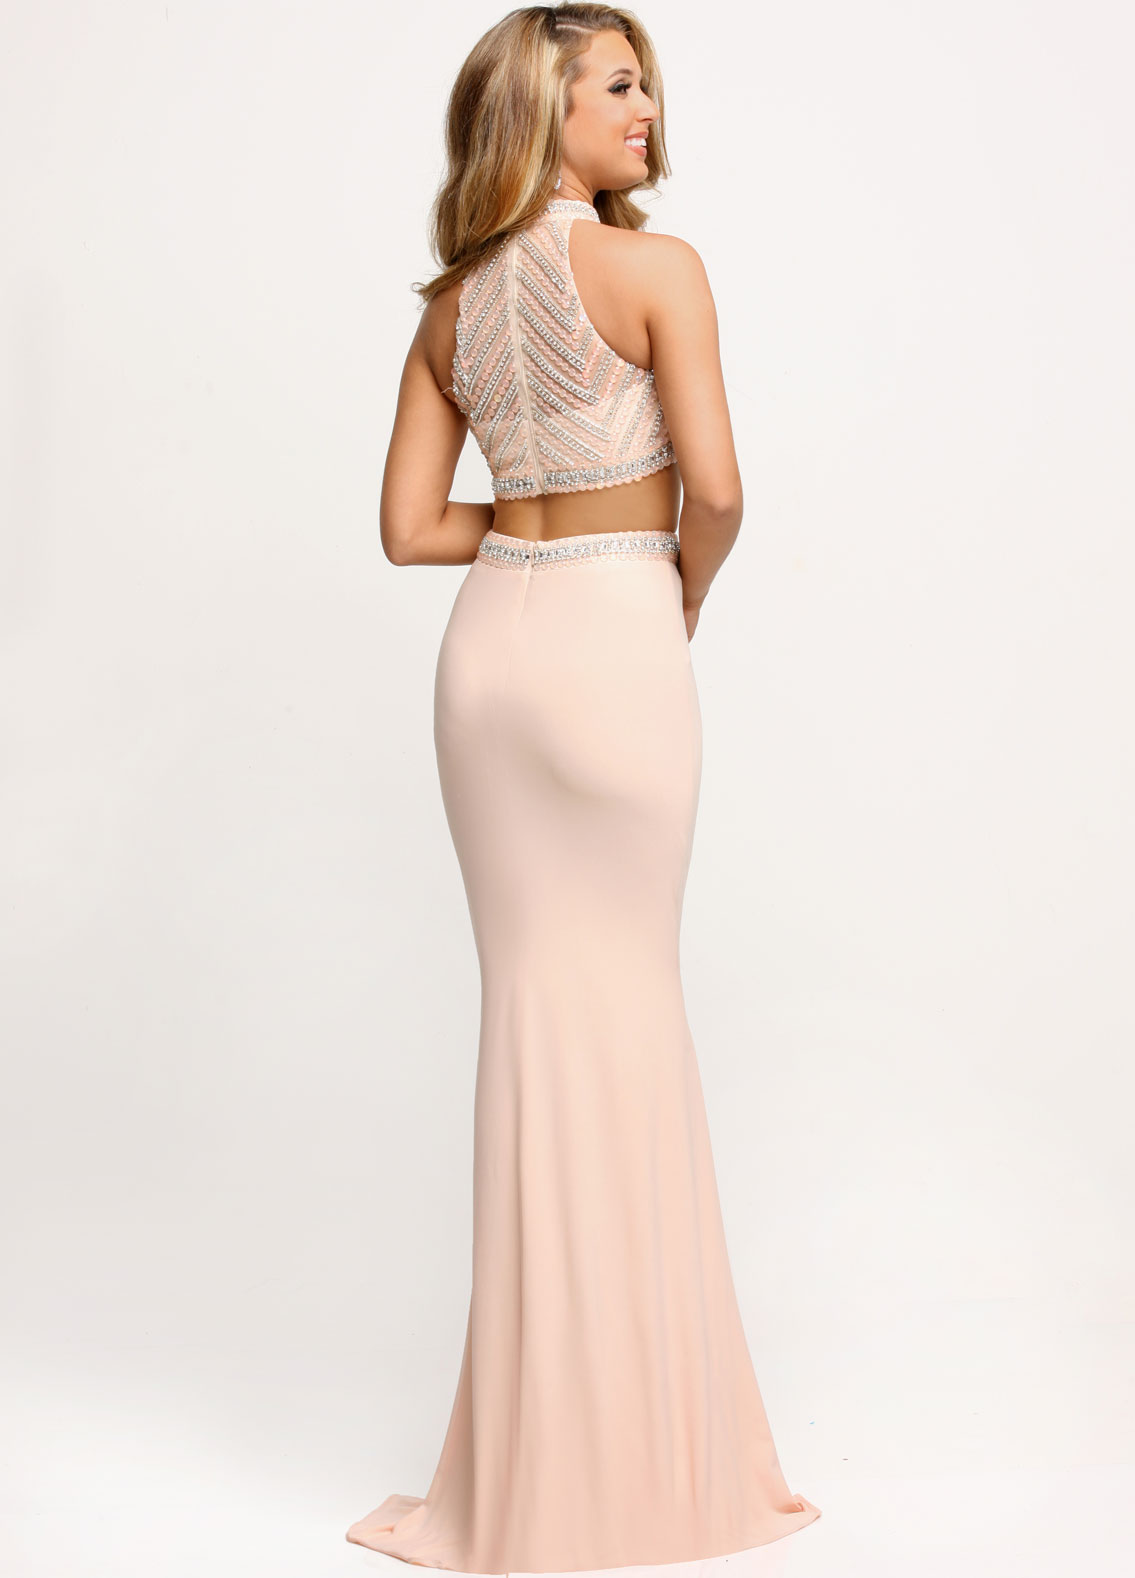 Image showing back view of style #71684